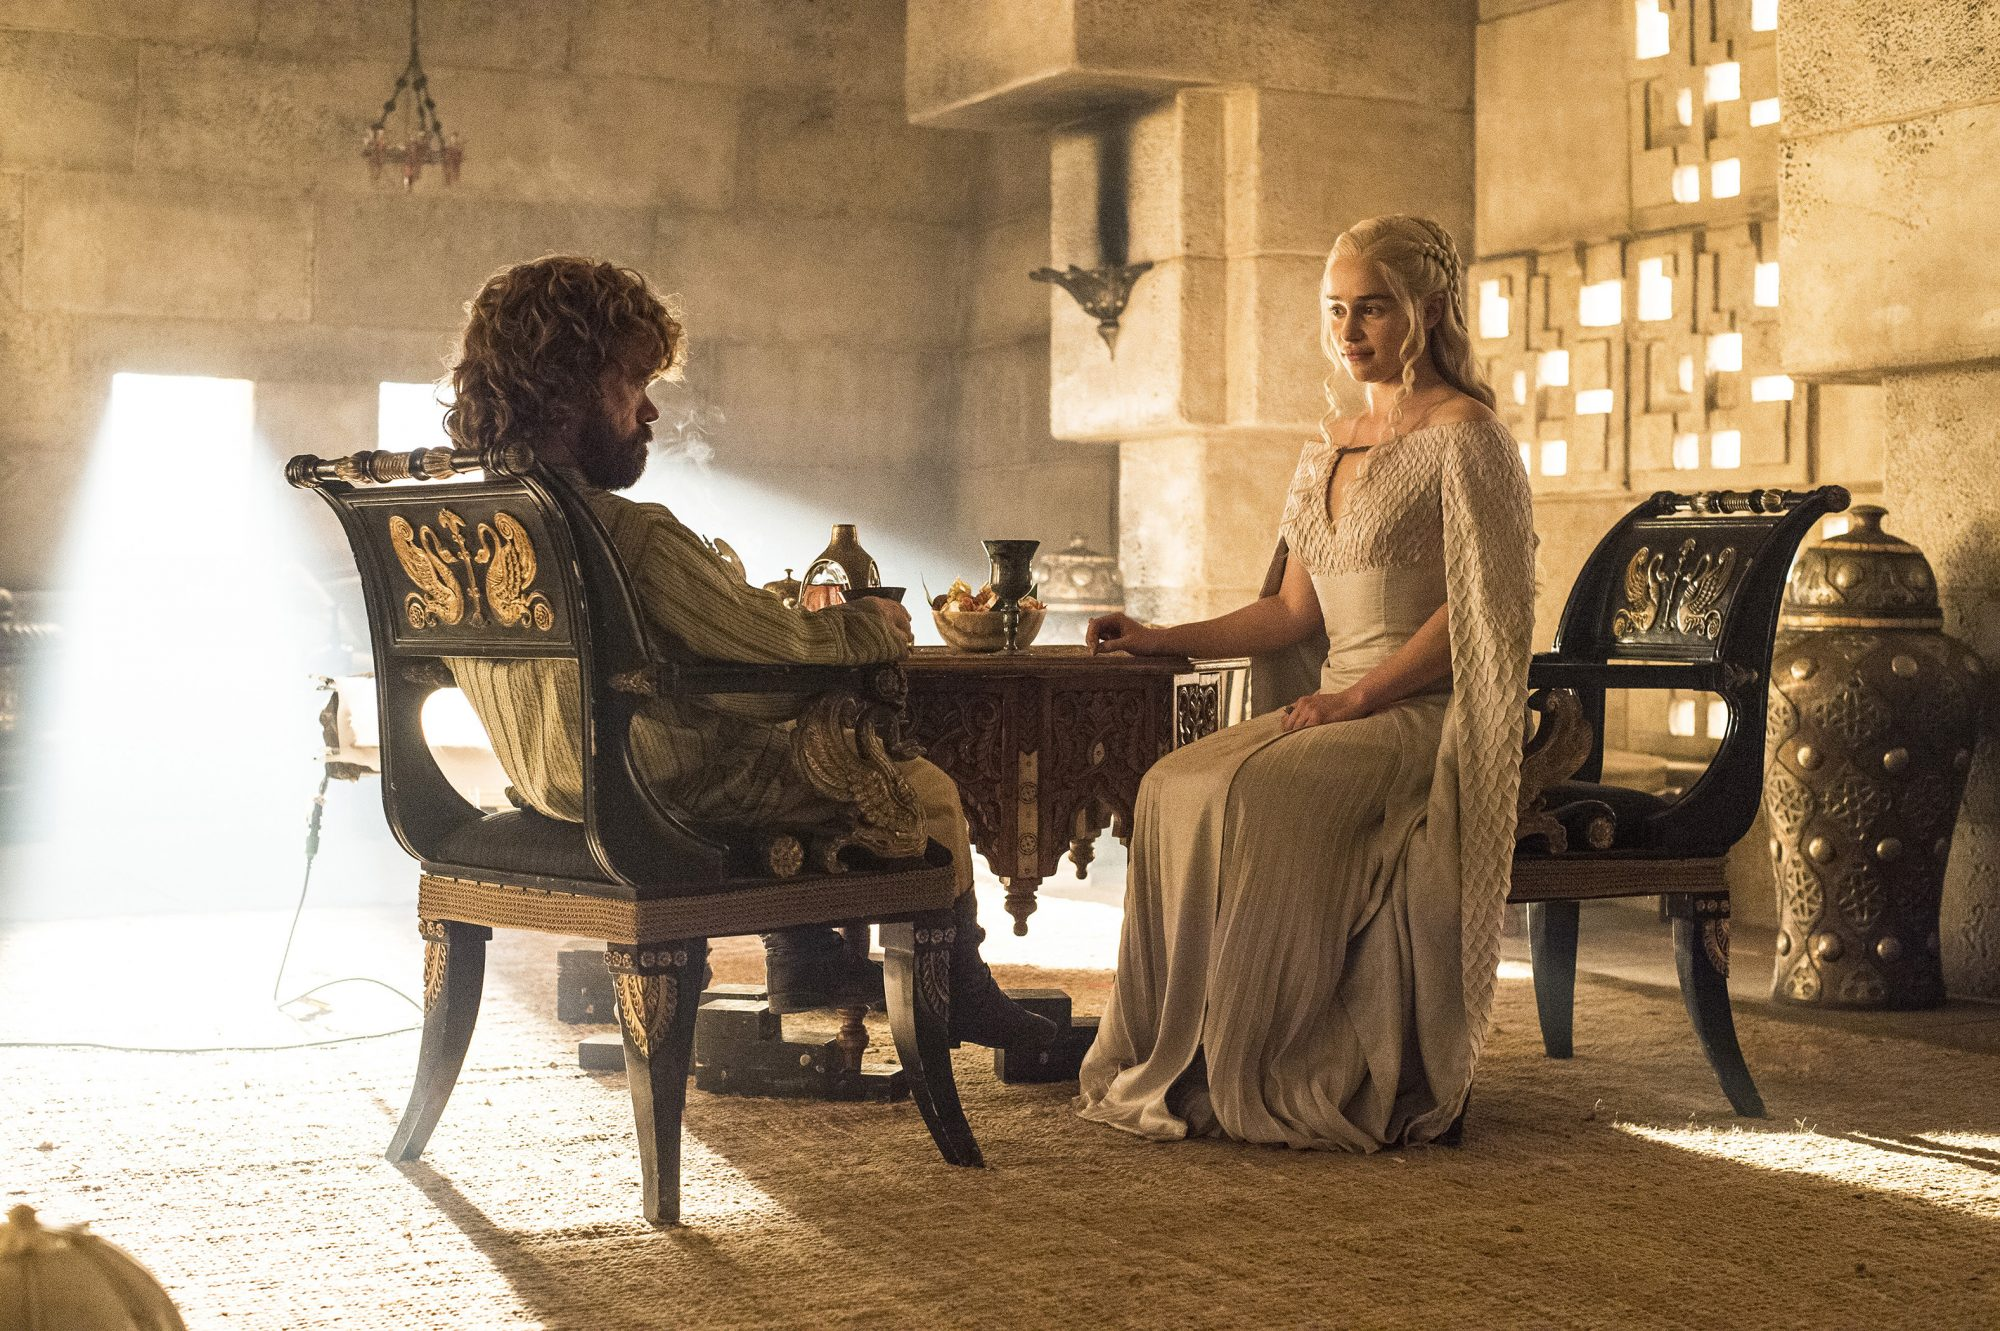 daenerys-tyrion-game-of-thrones-BLOG0817